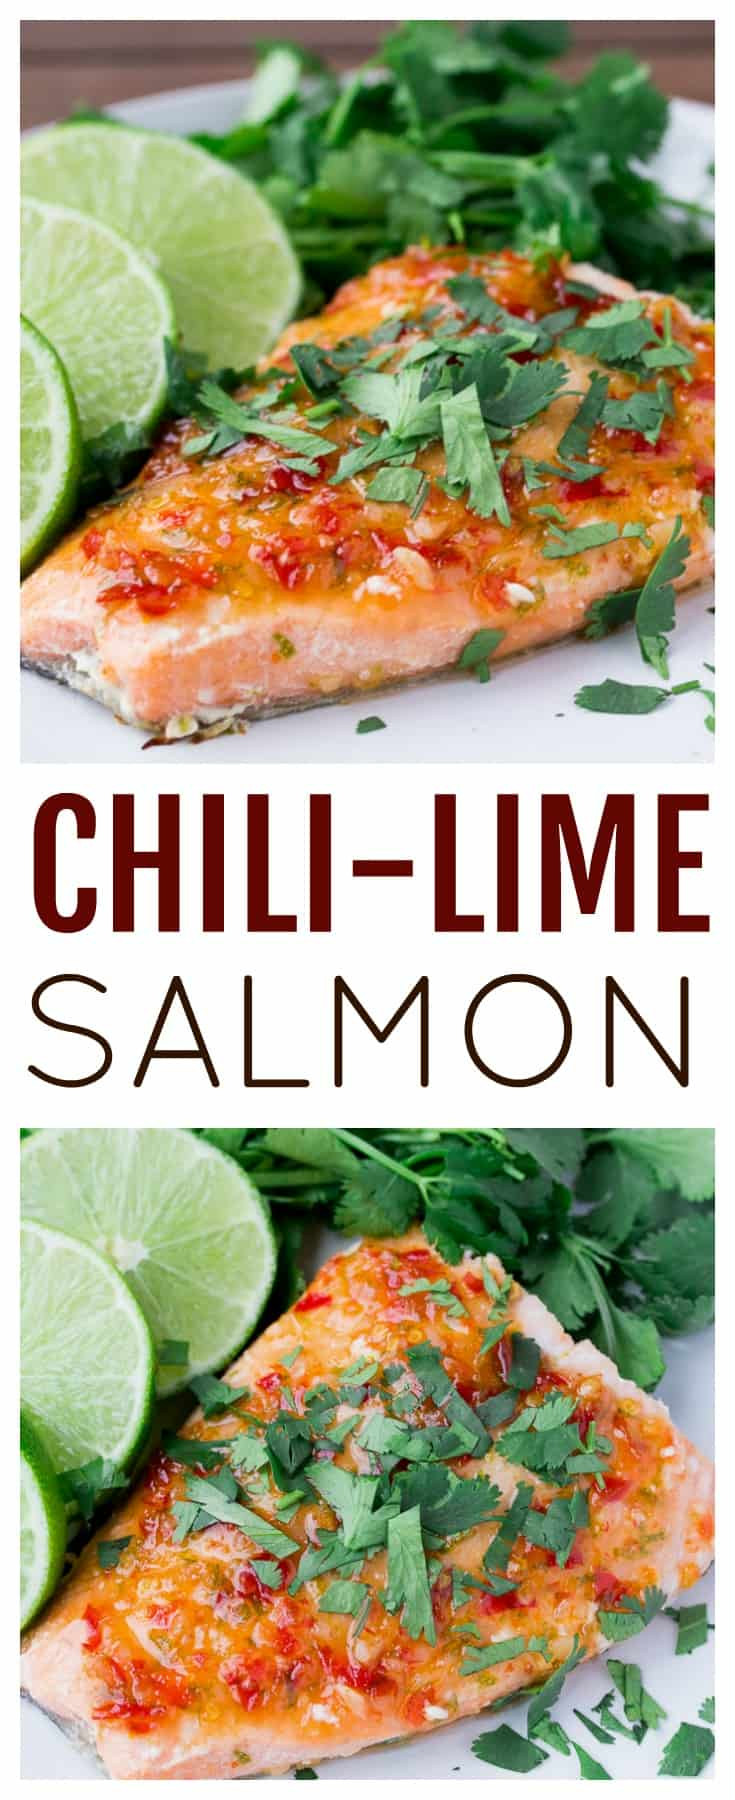 This Chili Lime Salmon Recipe is made with only 4 ingredients. It takes 15 minutes from start to finish making it perfect for busy weeknights! | main dish recipes | #dlbrecipes #salmon #chililimesalmon #salmonrecipe #glutenfree #easyrecipe